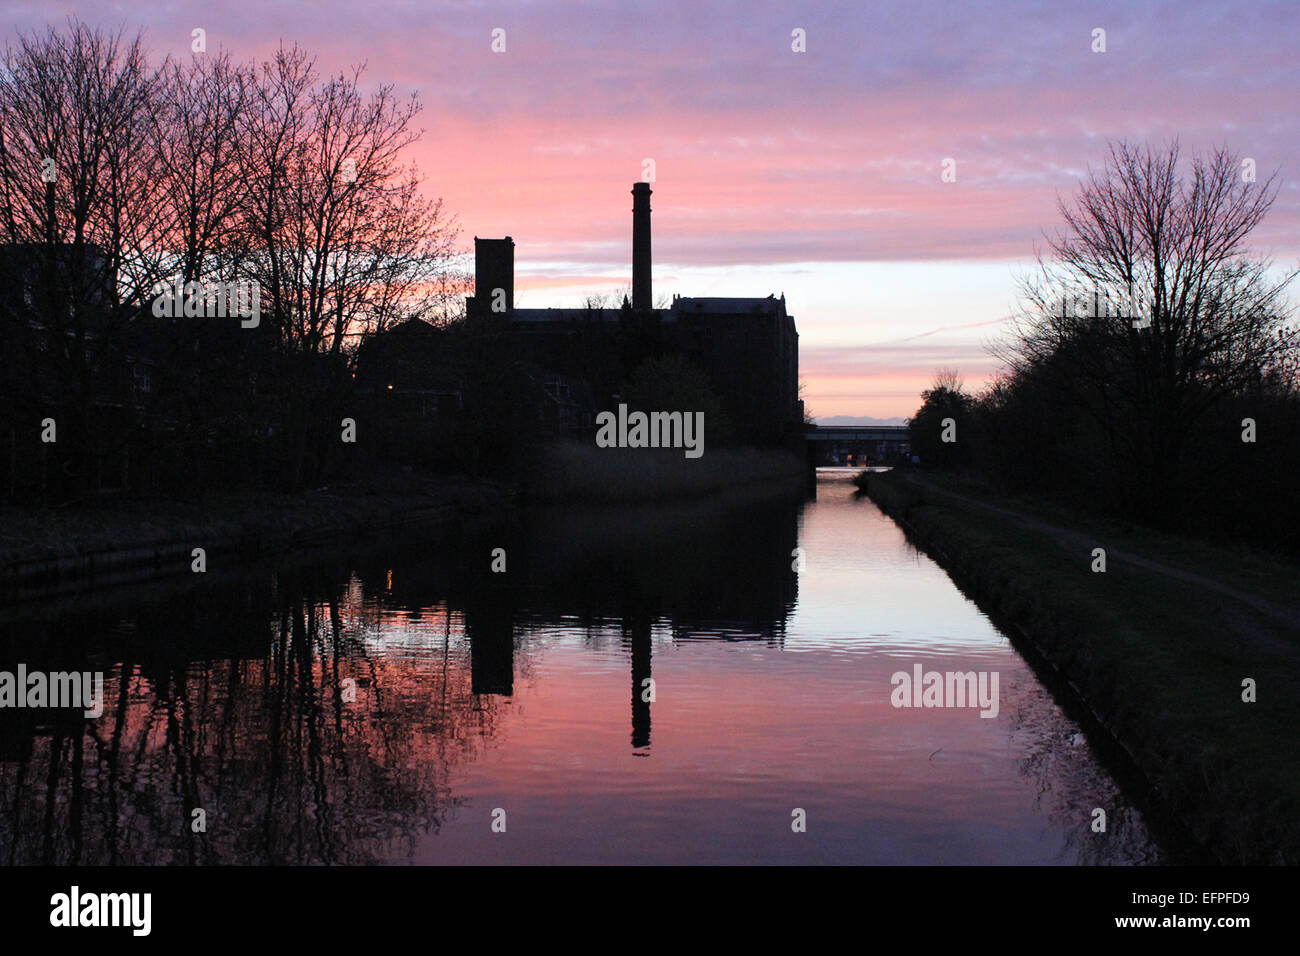 Burscough mill is silhouetted and reflected in The Leeds and Liverpool canal at dusk. - Stock Image